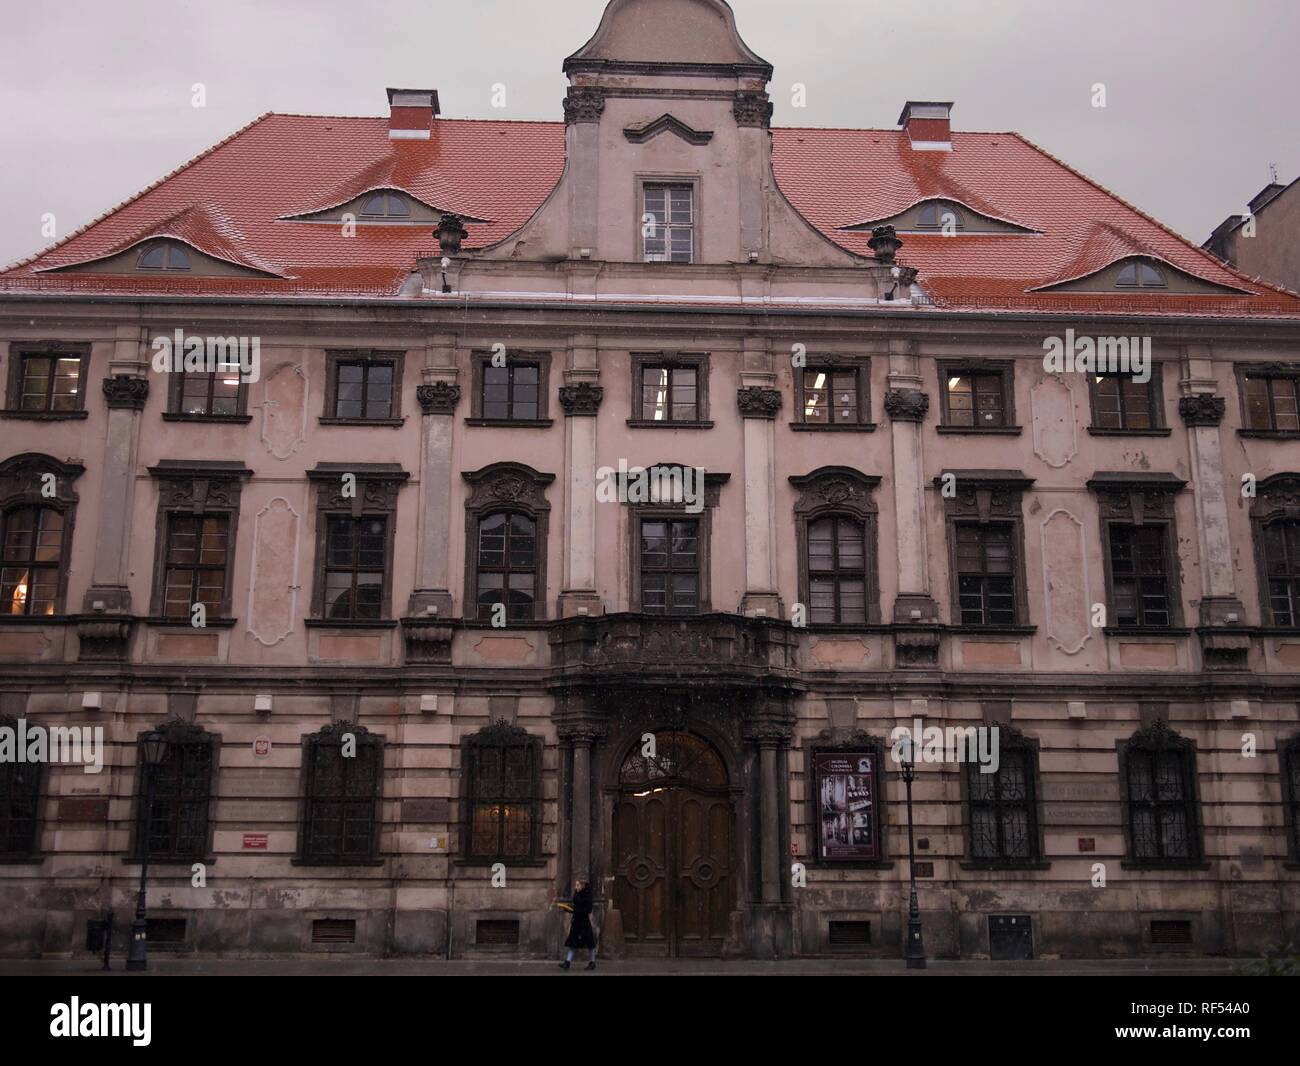 Architecture of the Museum of Man aka Muzeum Czlowieka in Wroclaw, Poland - Stock Image